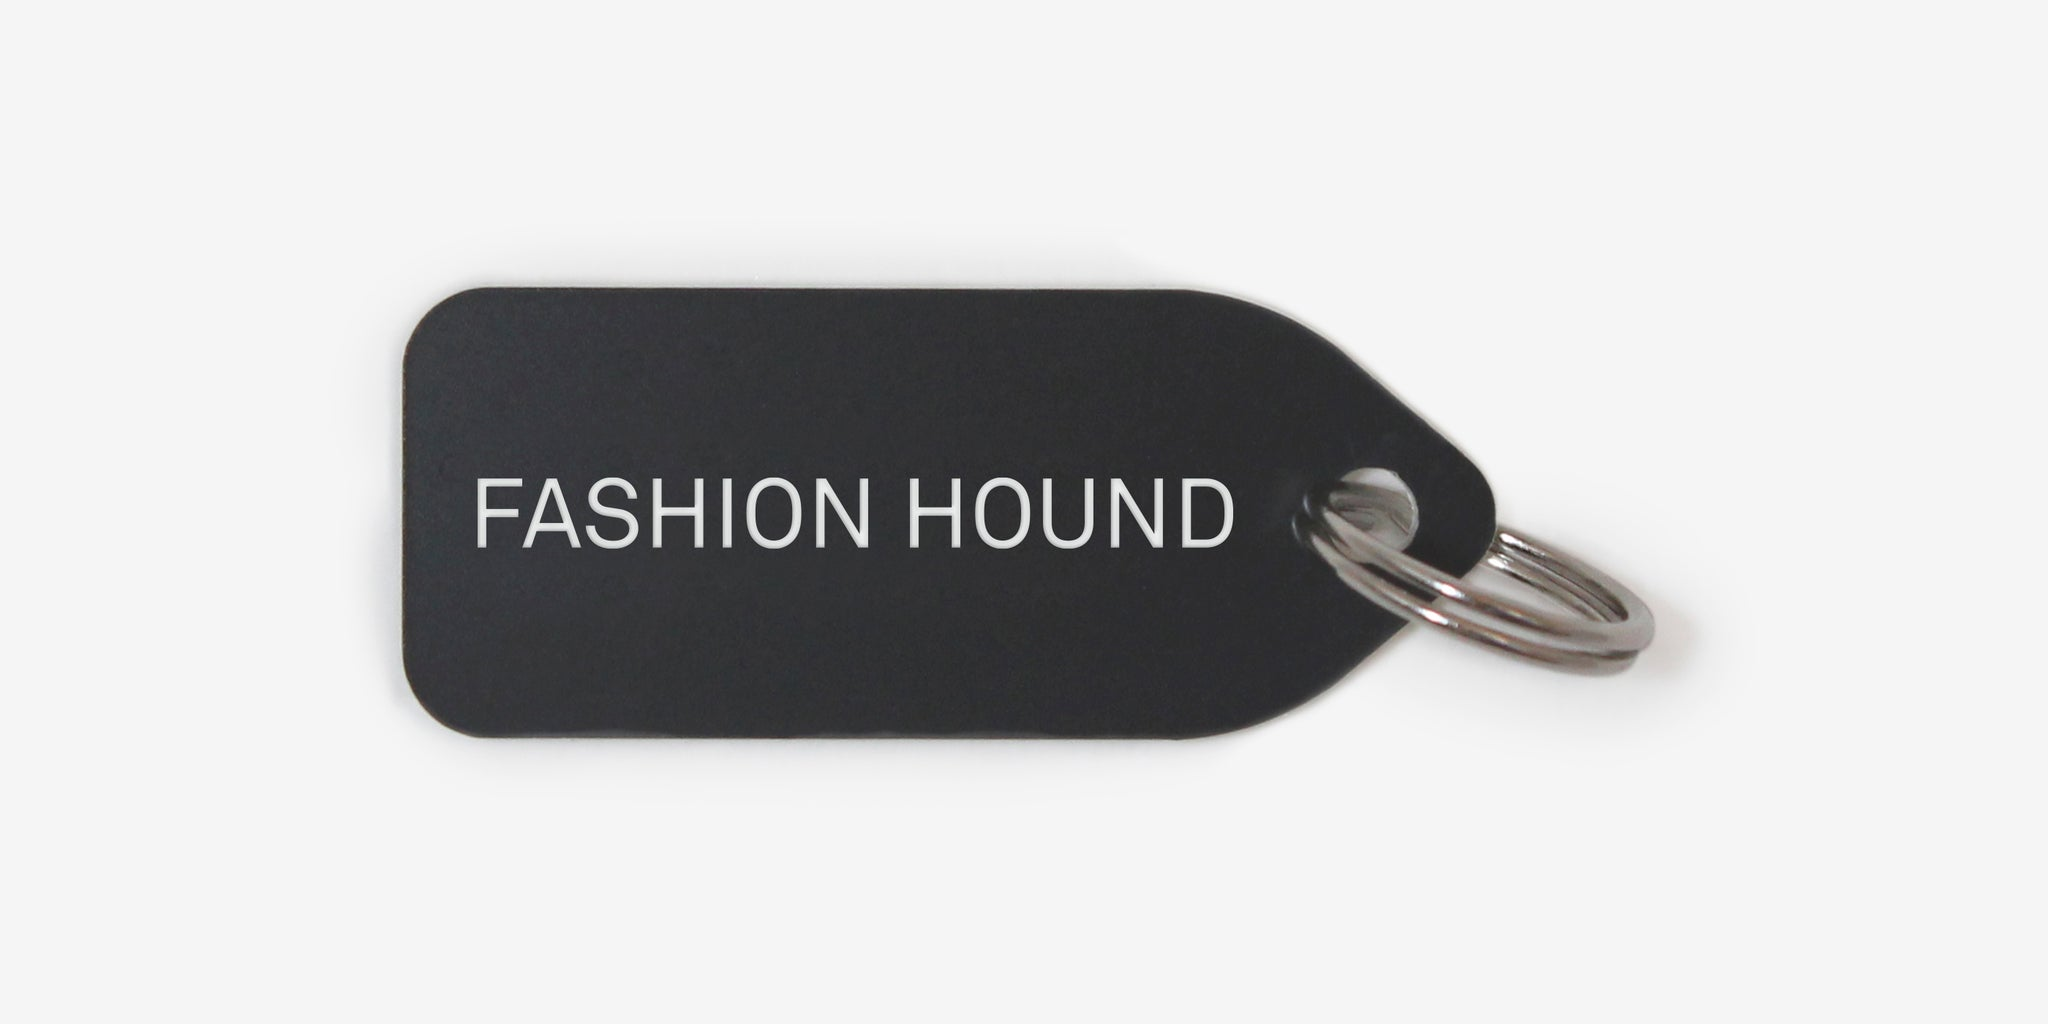 Fashion hound | dog tag | collar charm | Growlees